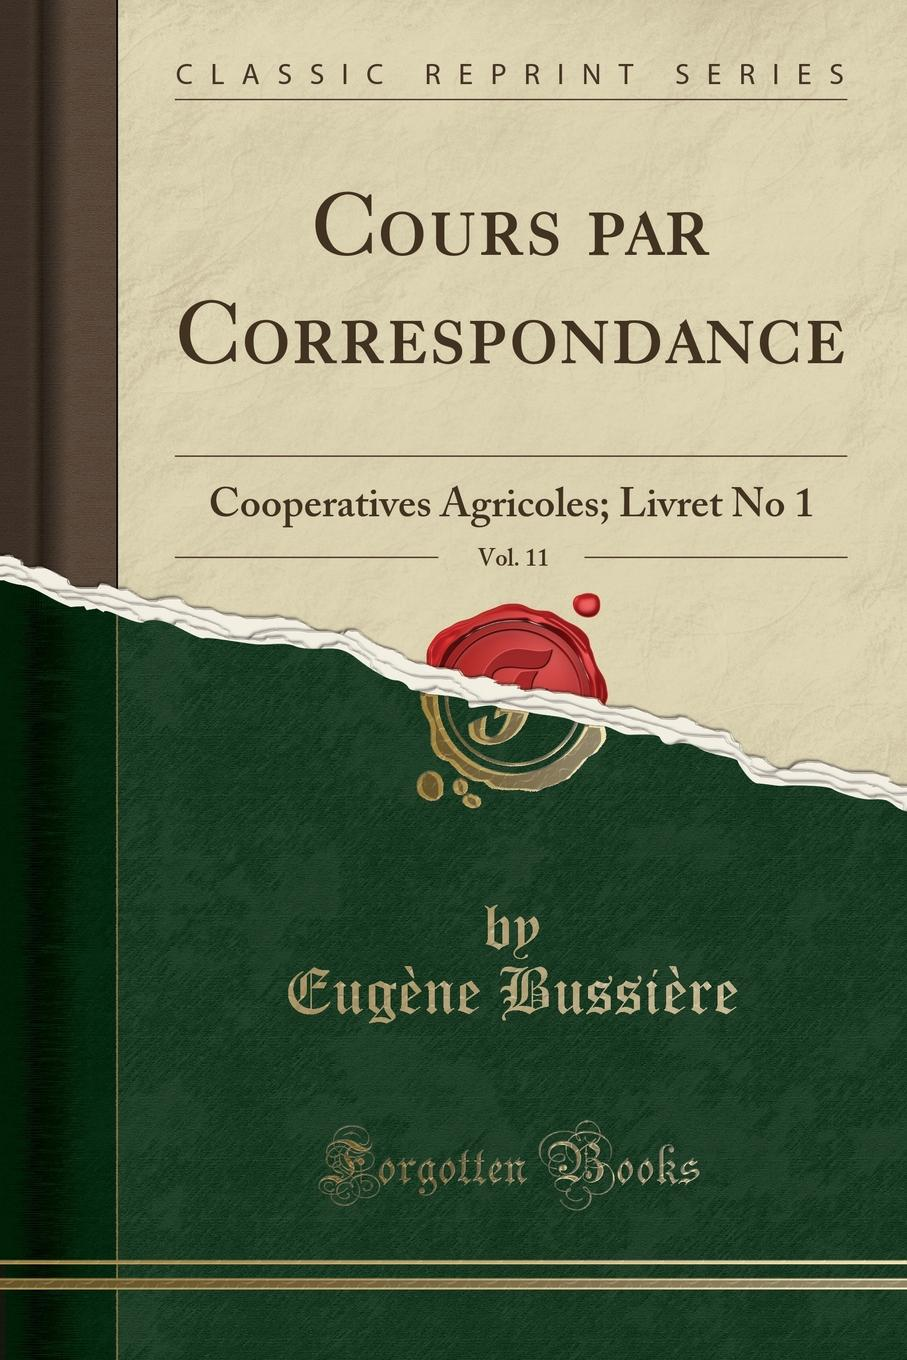 Cours par Correspondance, Vol. 11. Cooperatives Agricoles; Livret No 1 (Classic Reprint) Excerpt from Cours par Correspondance, Vol. 11: Cooperatives...